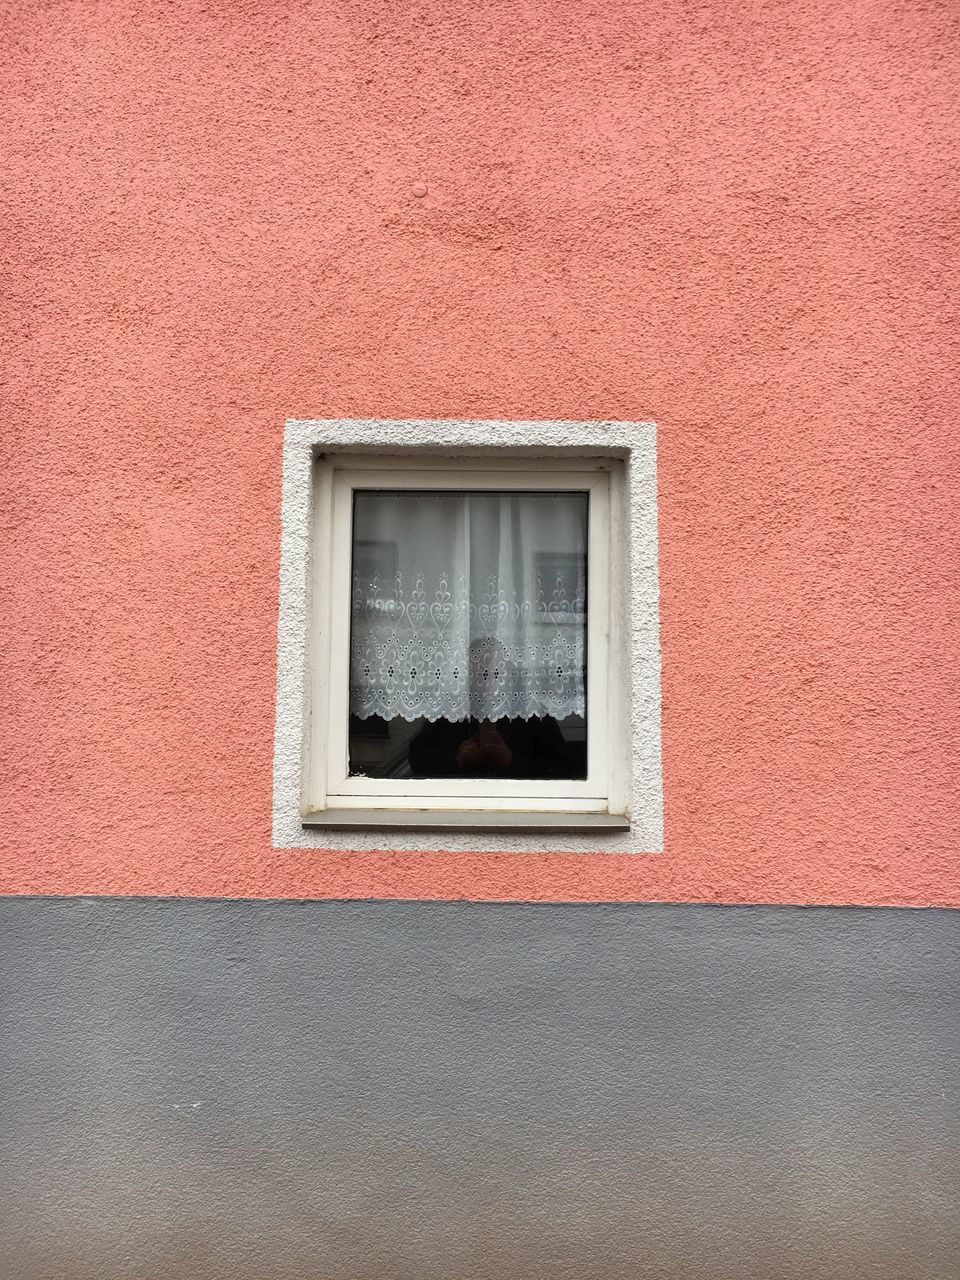 window, architecture, built structure, no people, building exterior, day, red, outdoors, close-up